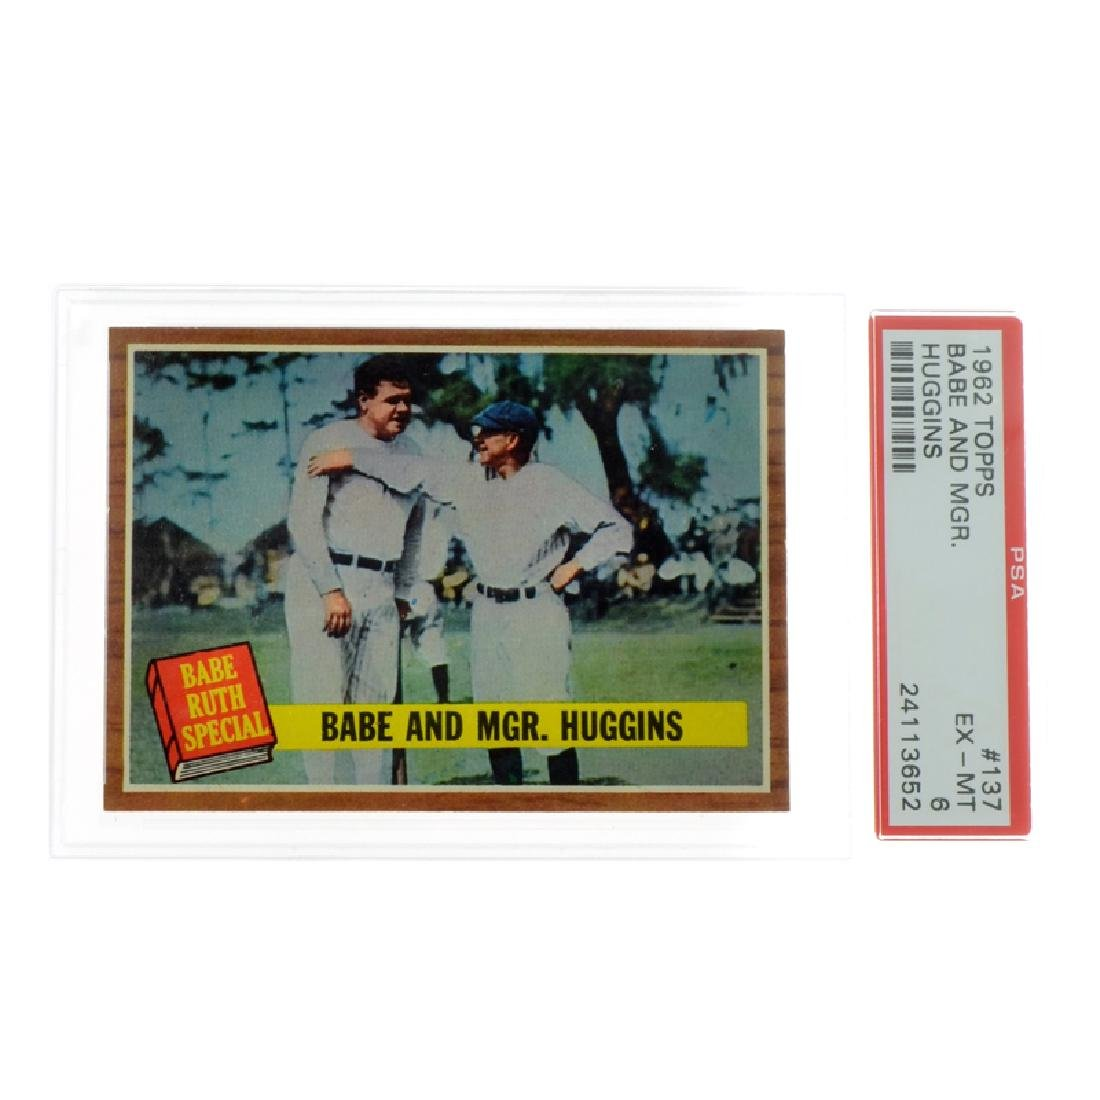 Rare Babe Ruth 1962 Topps Babe And Mgr. Huggins Card